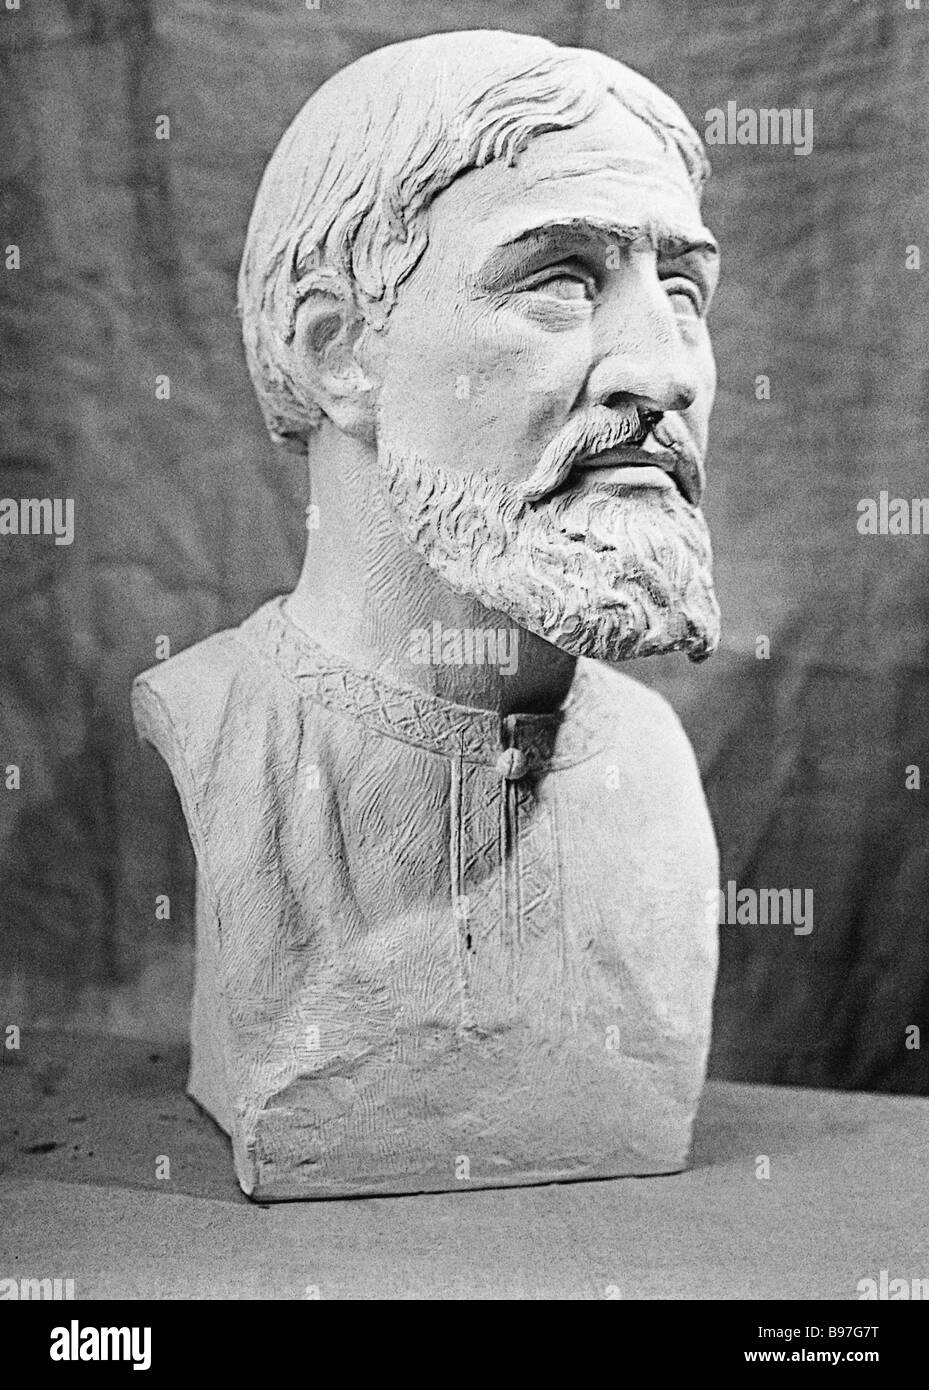 Trailblazing anthropologist and sculptor Mikhail Gerasimov made this bust of a man of the Krivich an early medieval - Stock Image